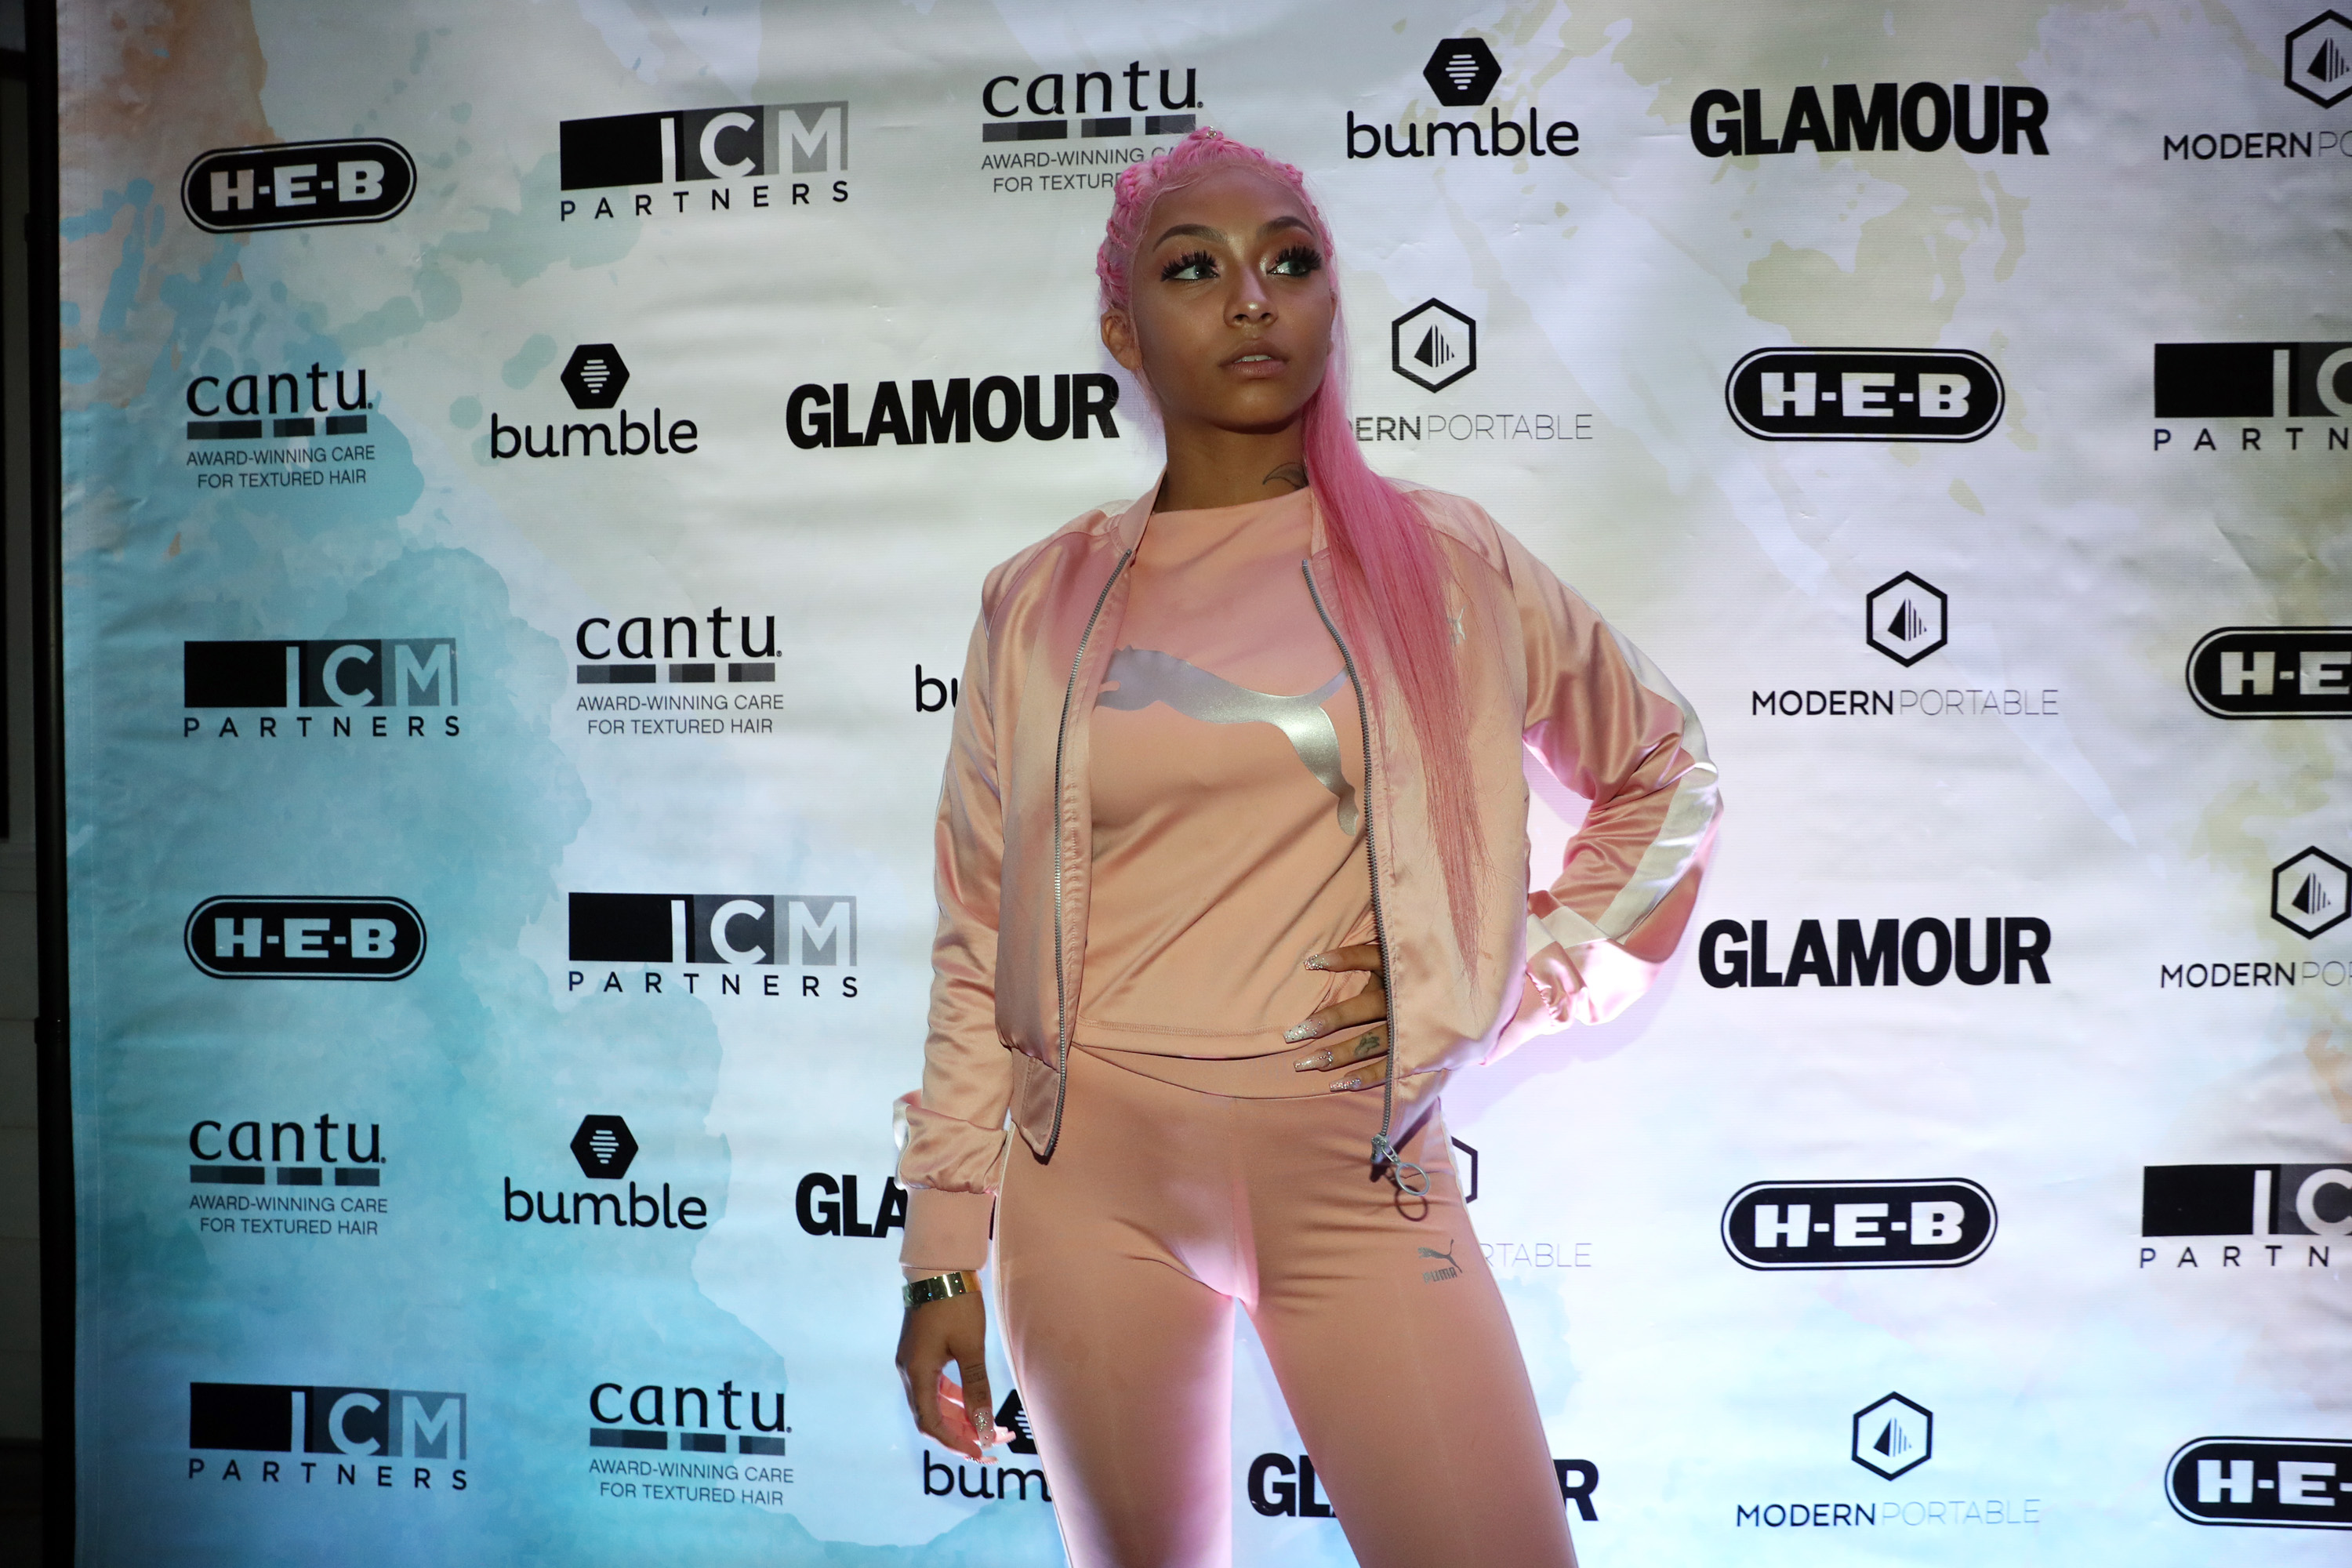 The 7th Annual ICM x Cantu Official SXSW Showcase Presented by Bumble